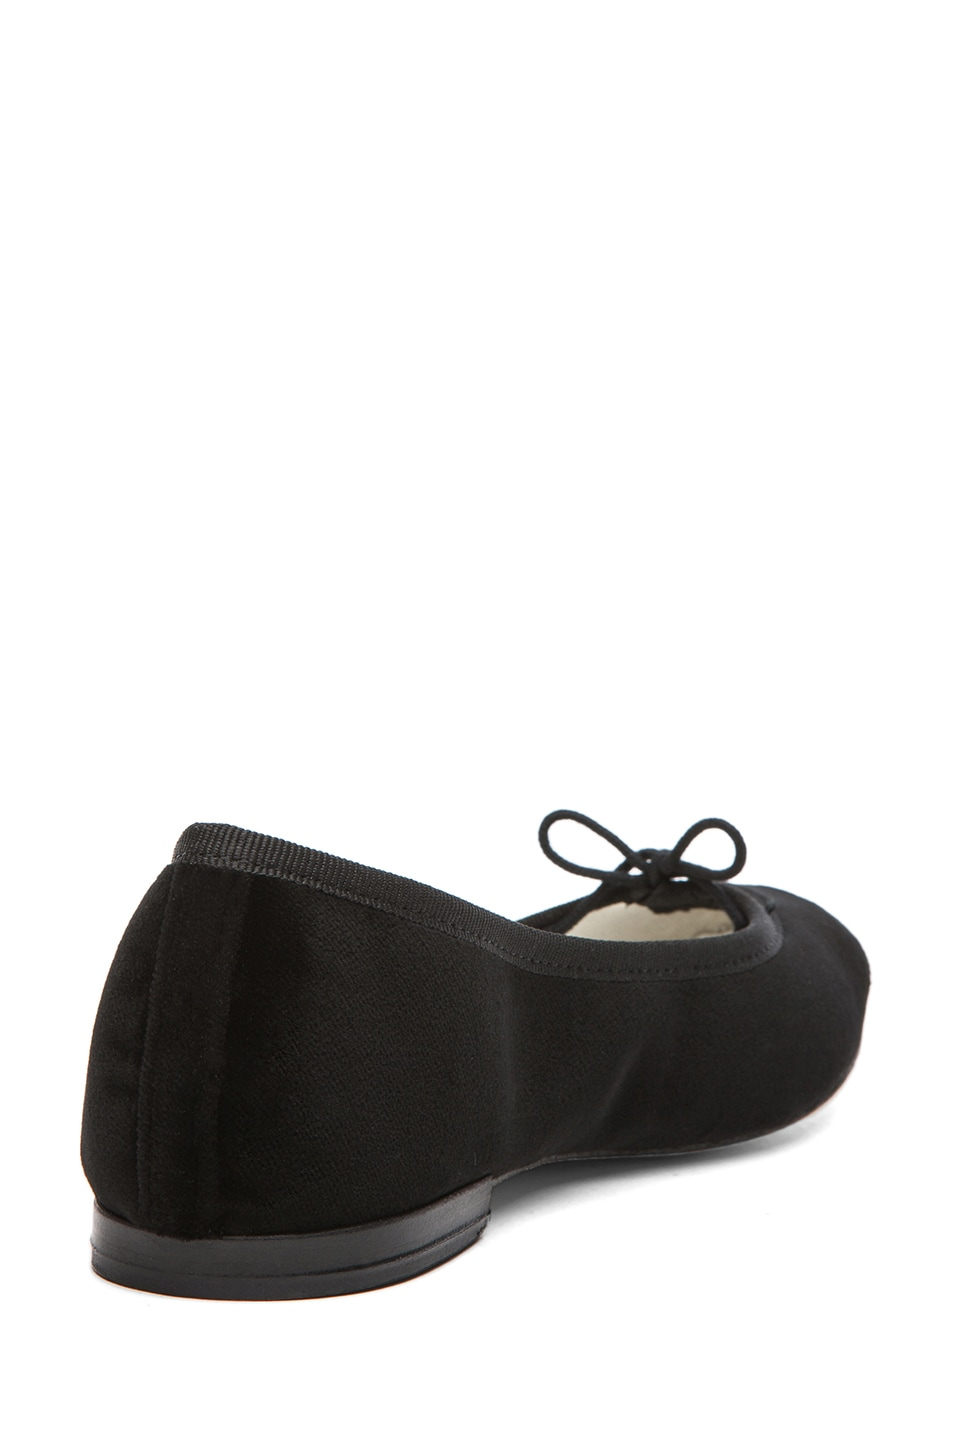 Image 3 of Repetto Velour Flats in Black